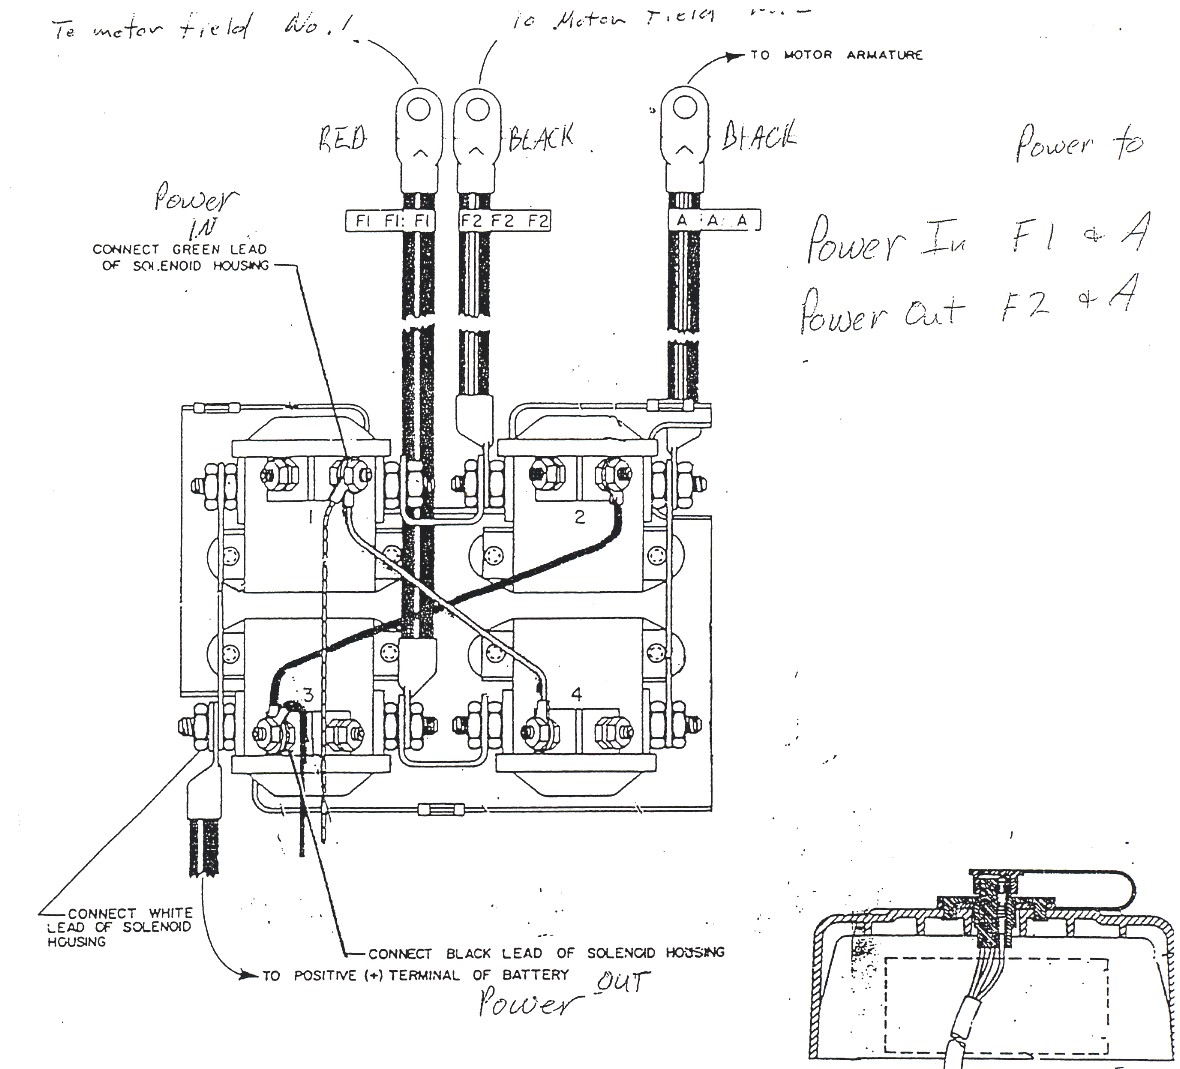 Warn Diagram Wiring Winch 1500 | Wiring Diagram on atv horn wiring diagram, atv contactor wiring diagram, atv wiring harness diagram, atv starter diagram,